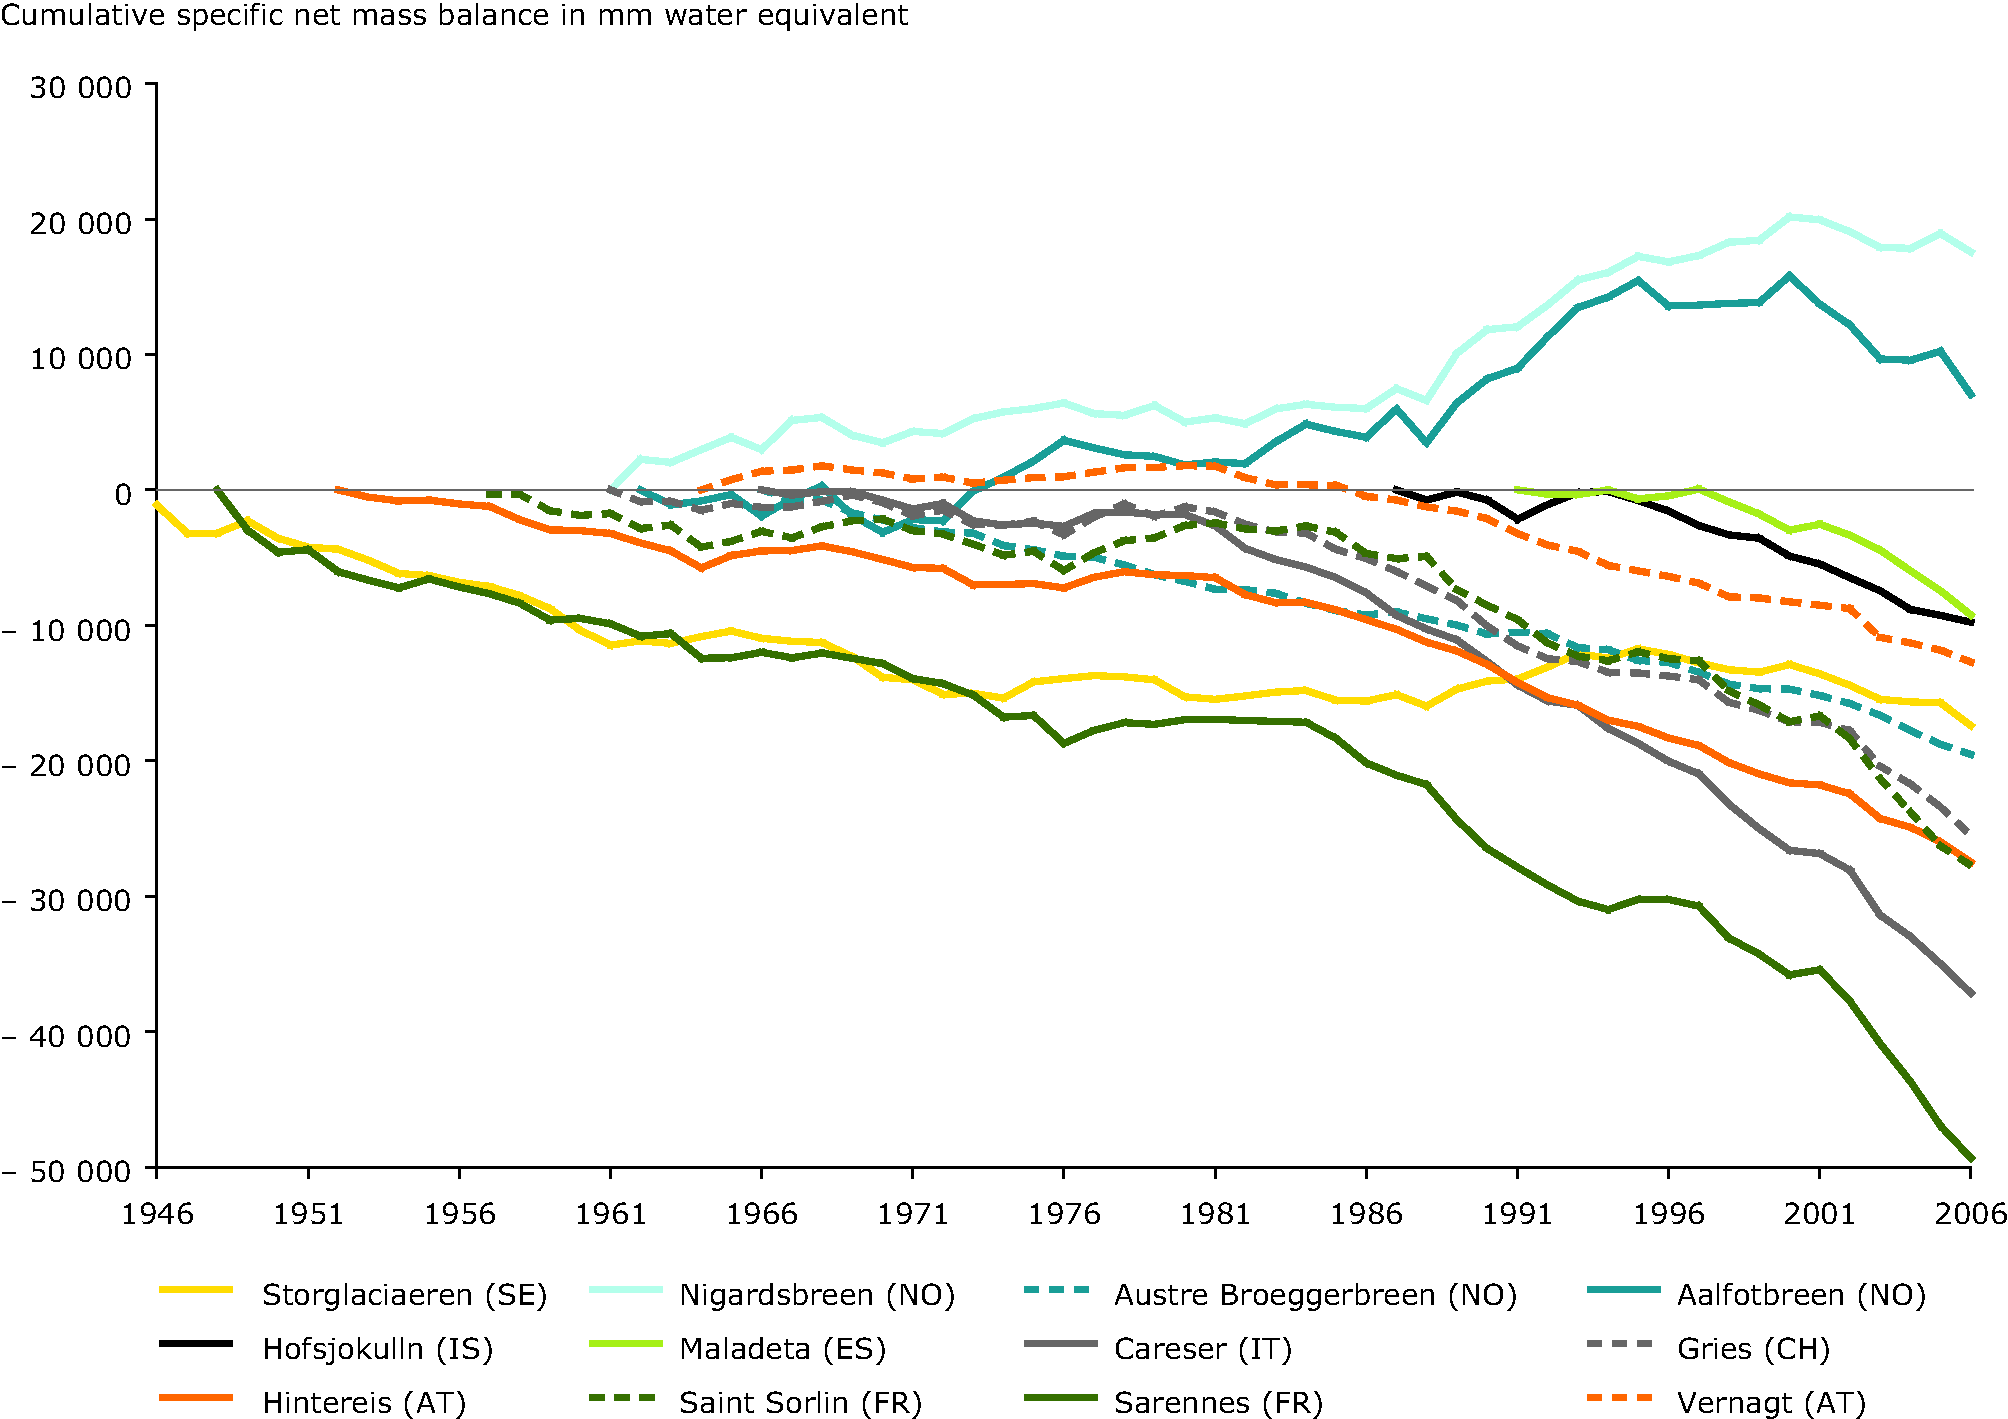 Cumulative specific net mass balance of glaciers from all European glaciated regions 1946-2006